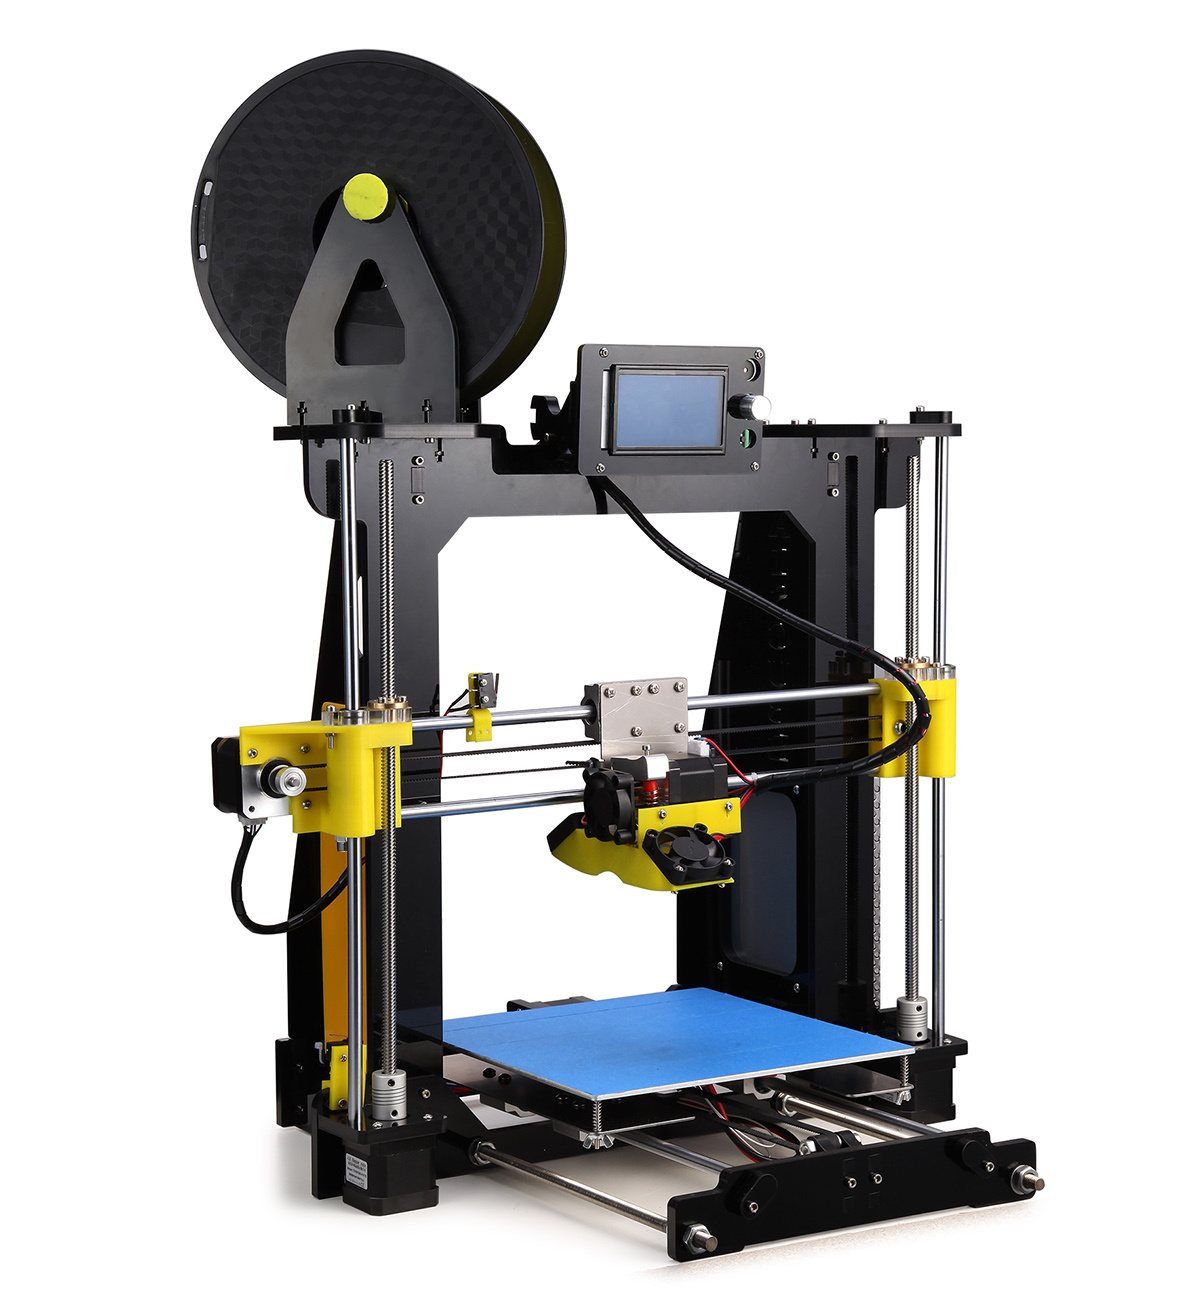 Rise Acrylic High Precision Desktop DIY Fdm 3D Printer Machine